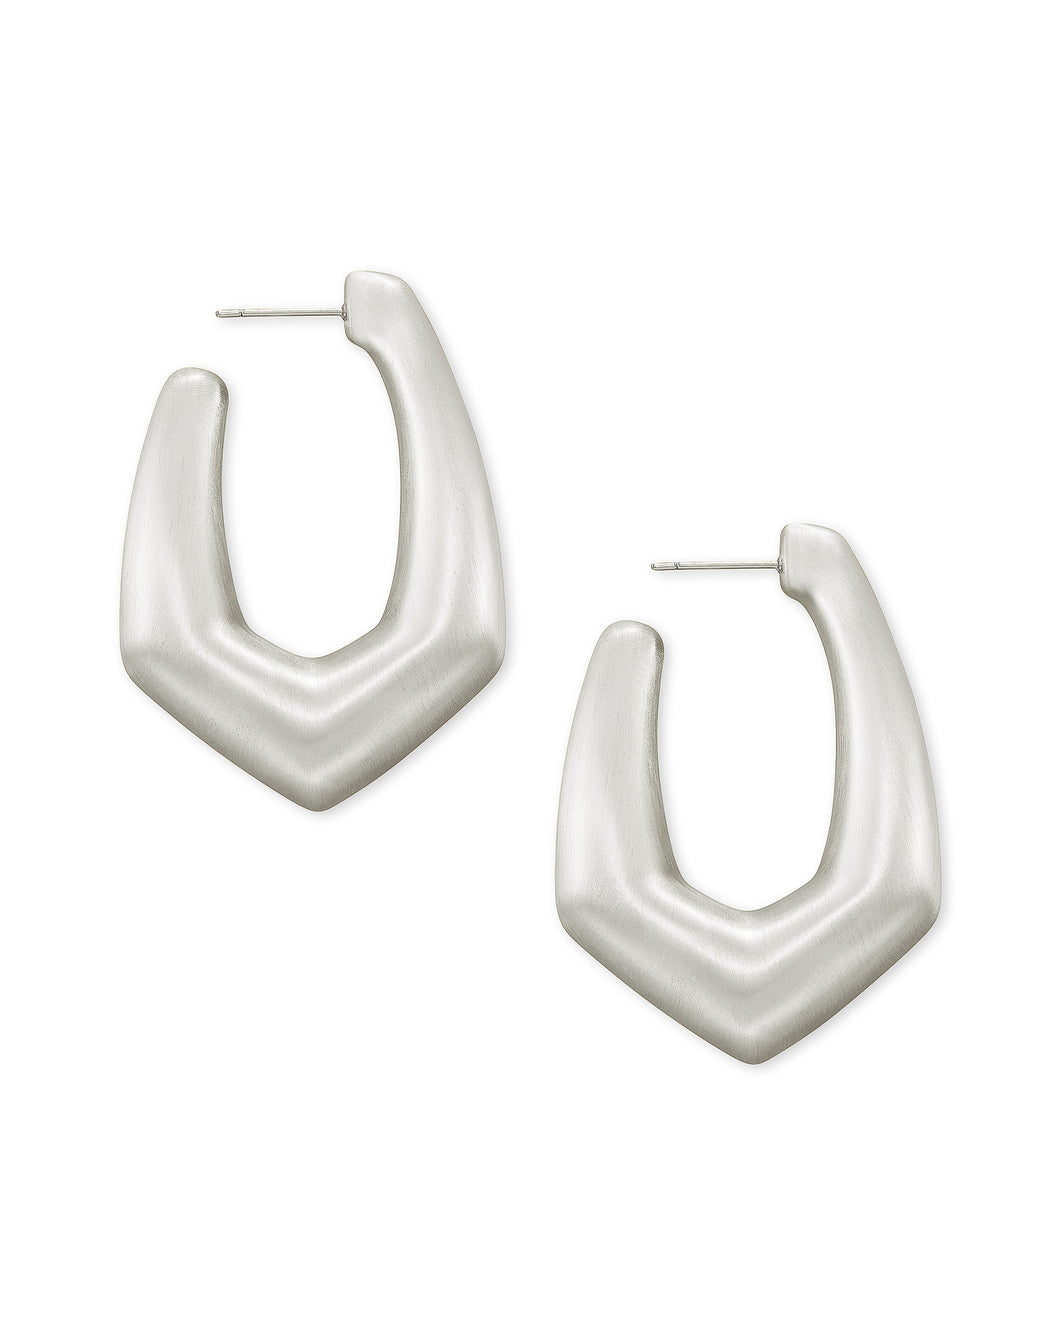 Kendra Scott Kaia Hoop Earrings in Silver